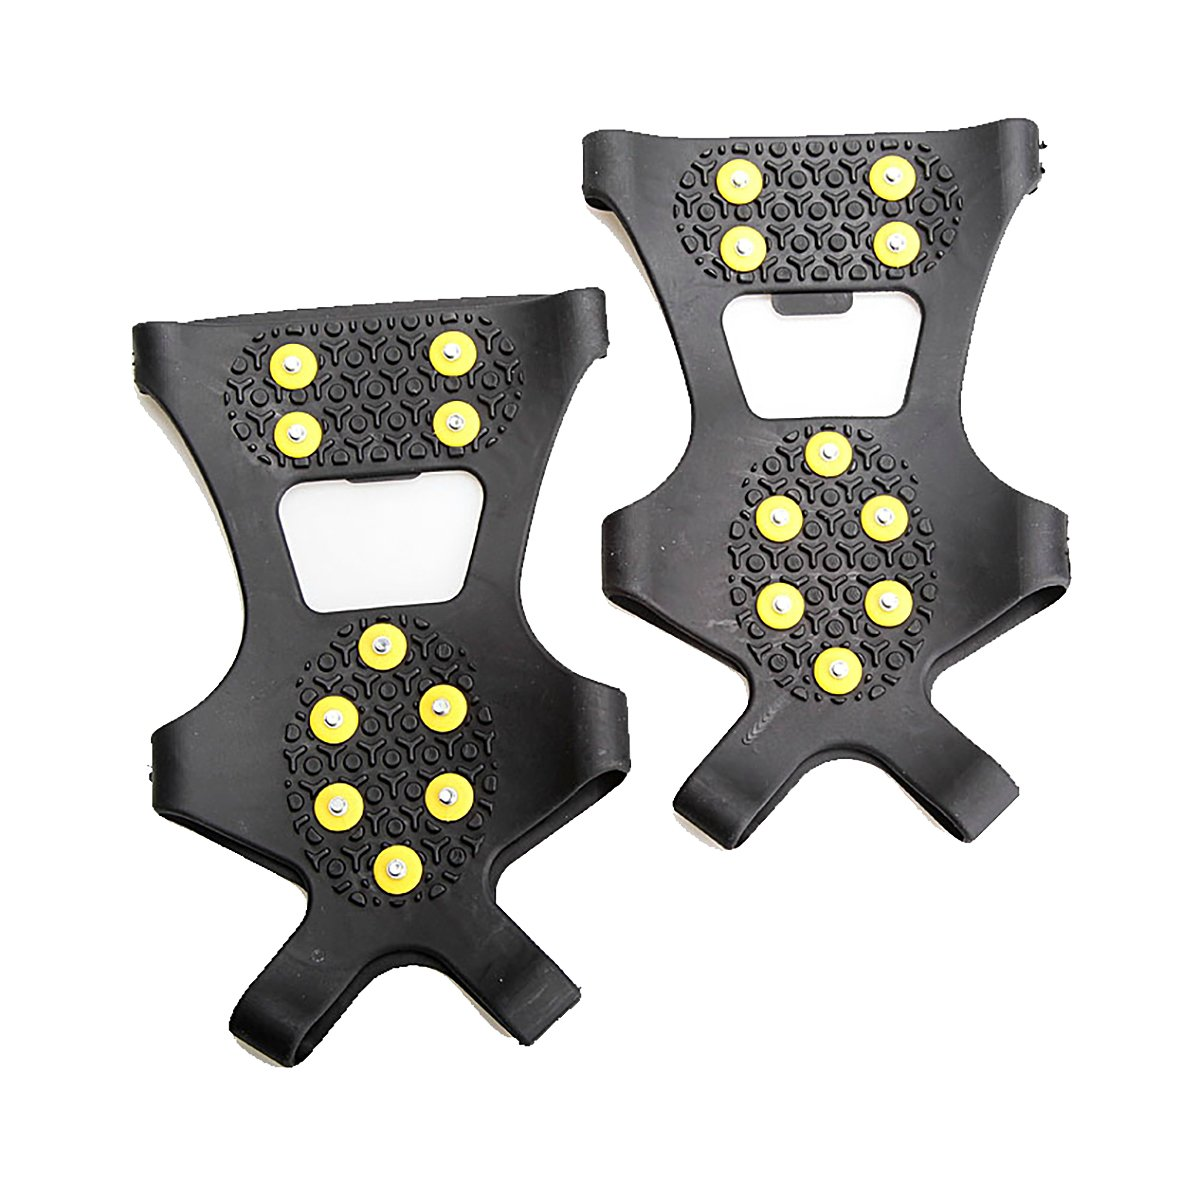 HooAMI Ice Grippers Traction Cleats Grippers, Non-slip Over Shoe/Boot Rubber Spikes Crampons with 10 Steel Studs Crampons Slip-on Stretch Footwear,Size M